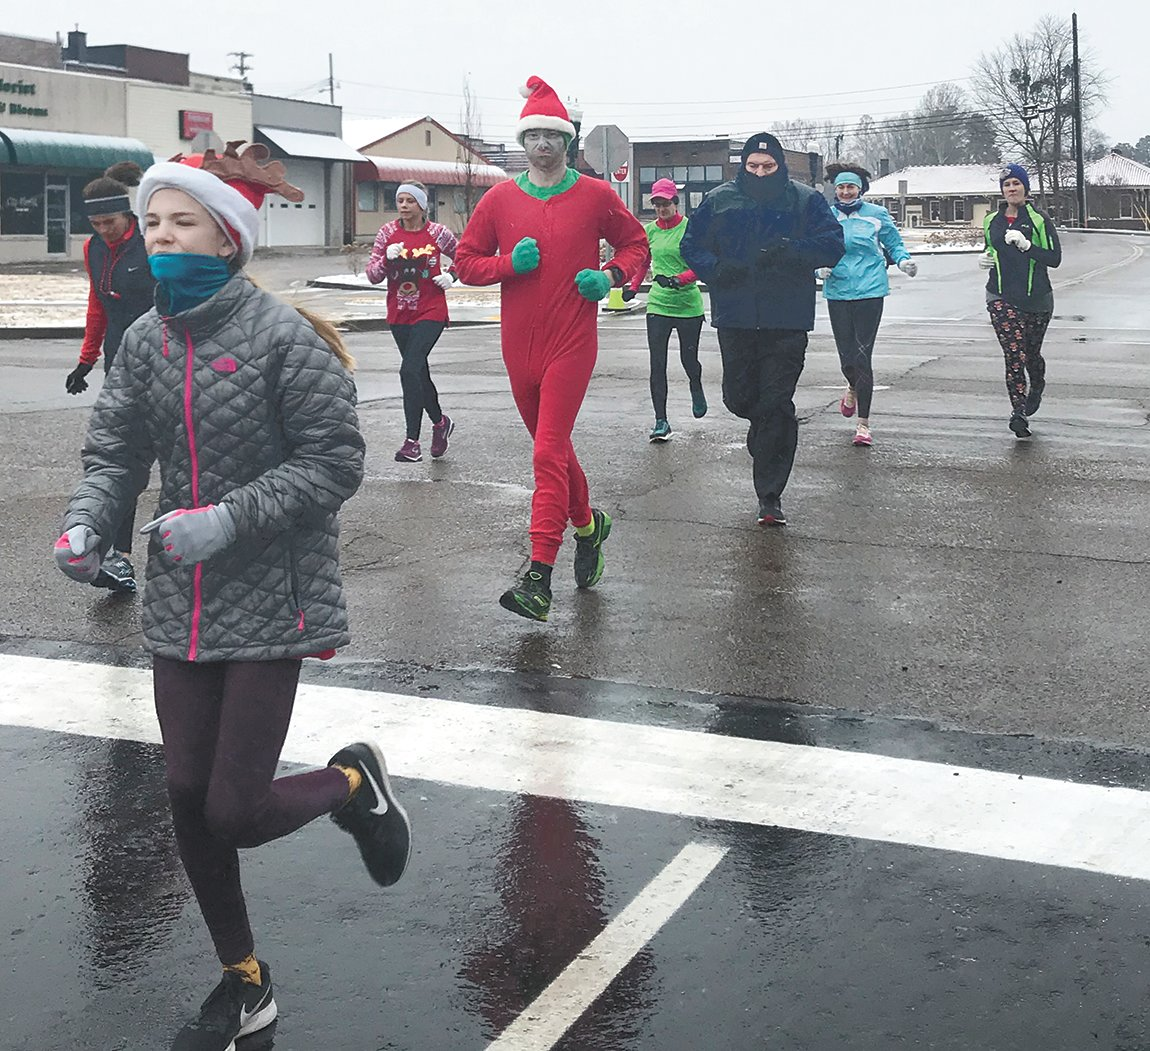 Despite wet and dreary conditions, runners for the Catch Me Under the Mistletoe 5K bundled up and gave it their best.